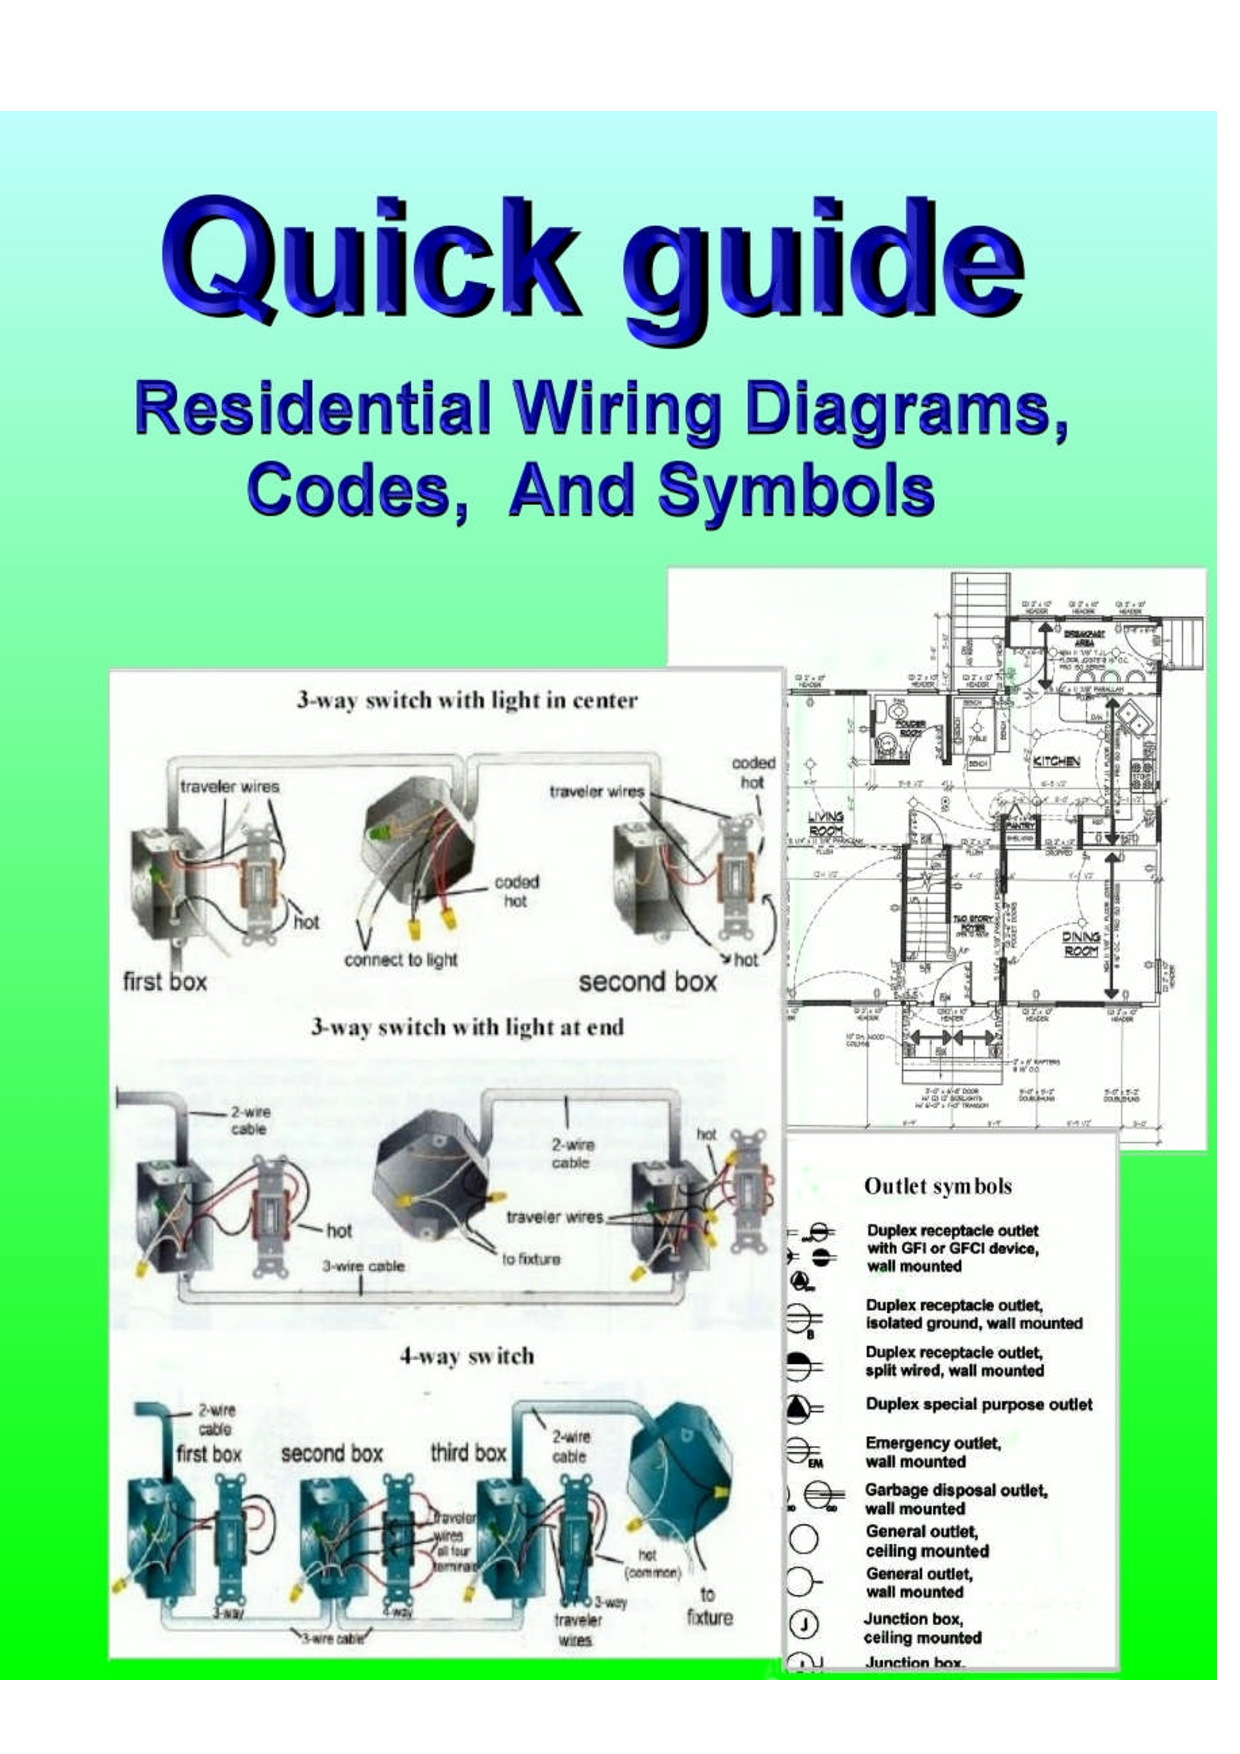 a step by step home wiring guide with diagrams, symbols, and electrical  codes